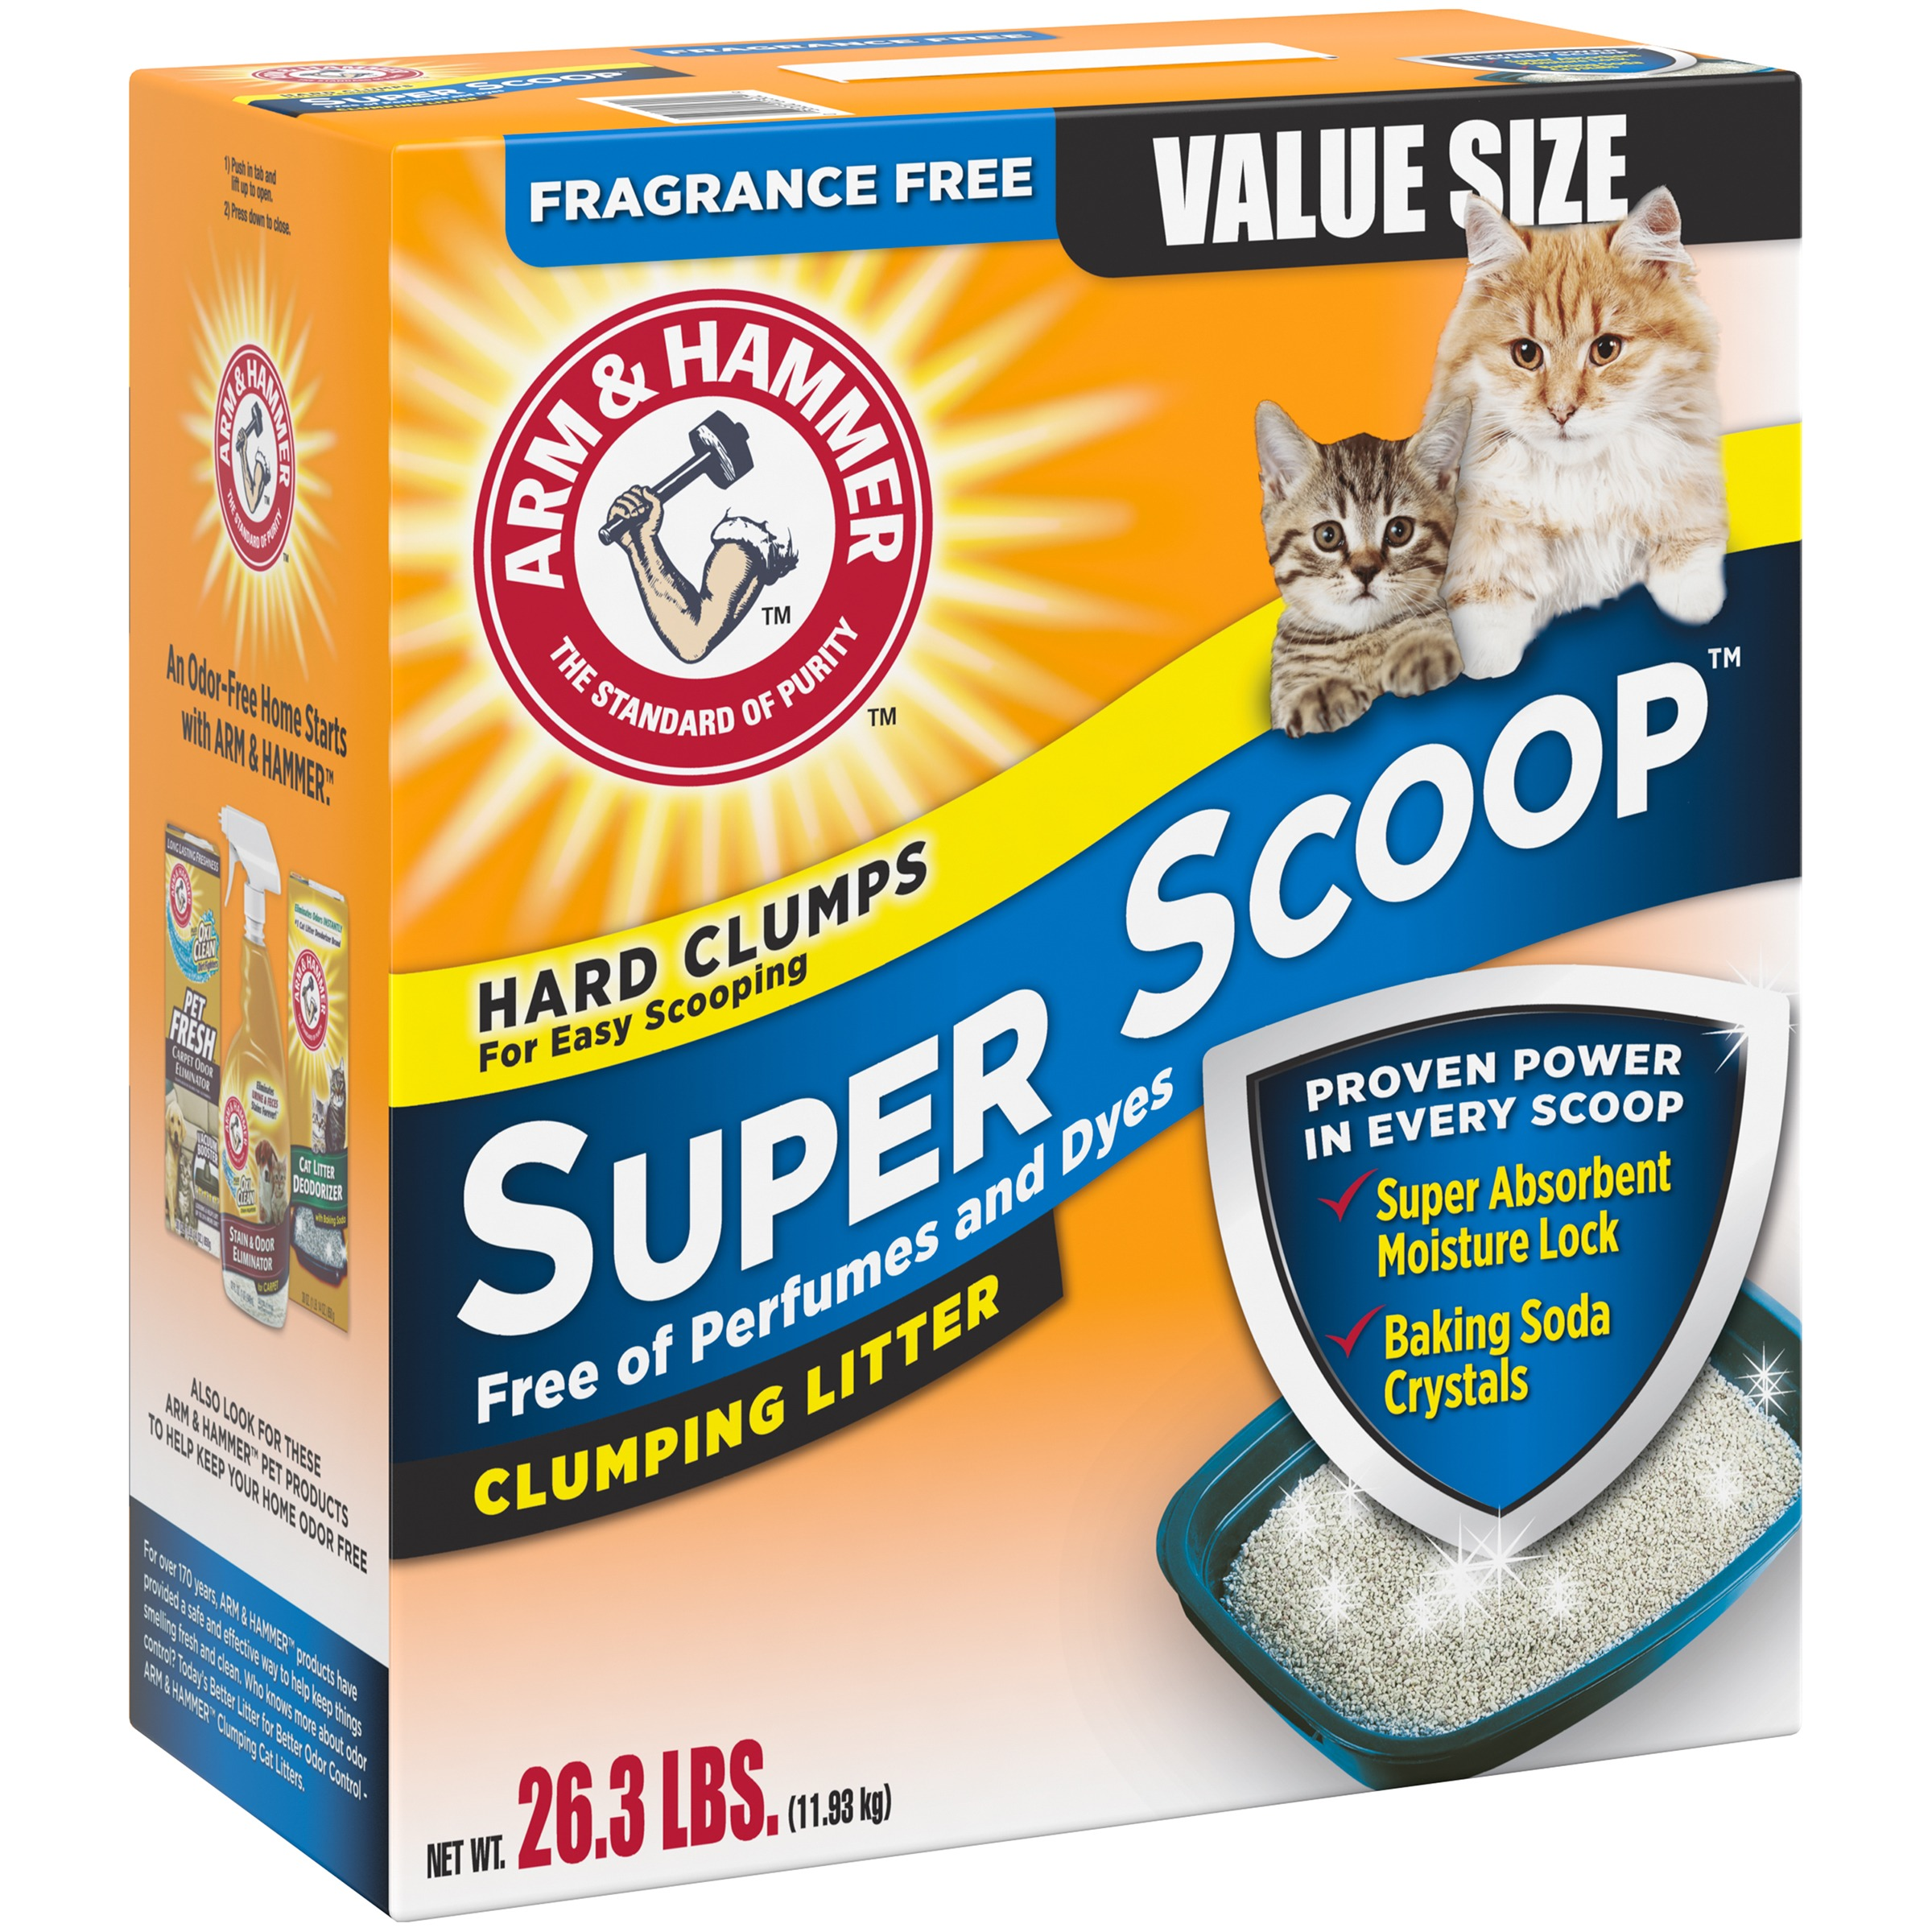 Arm & Hammer Super Scoop Fragrance Free Clumping Cat Litter 26.3 lb. Box